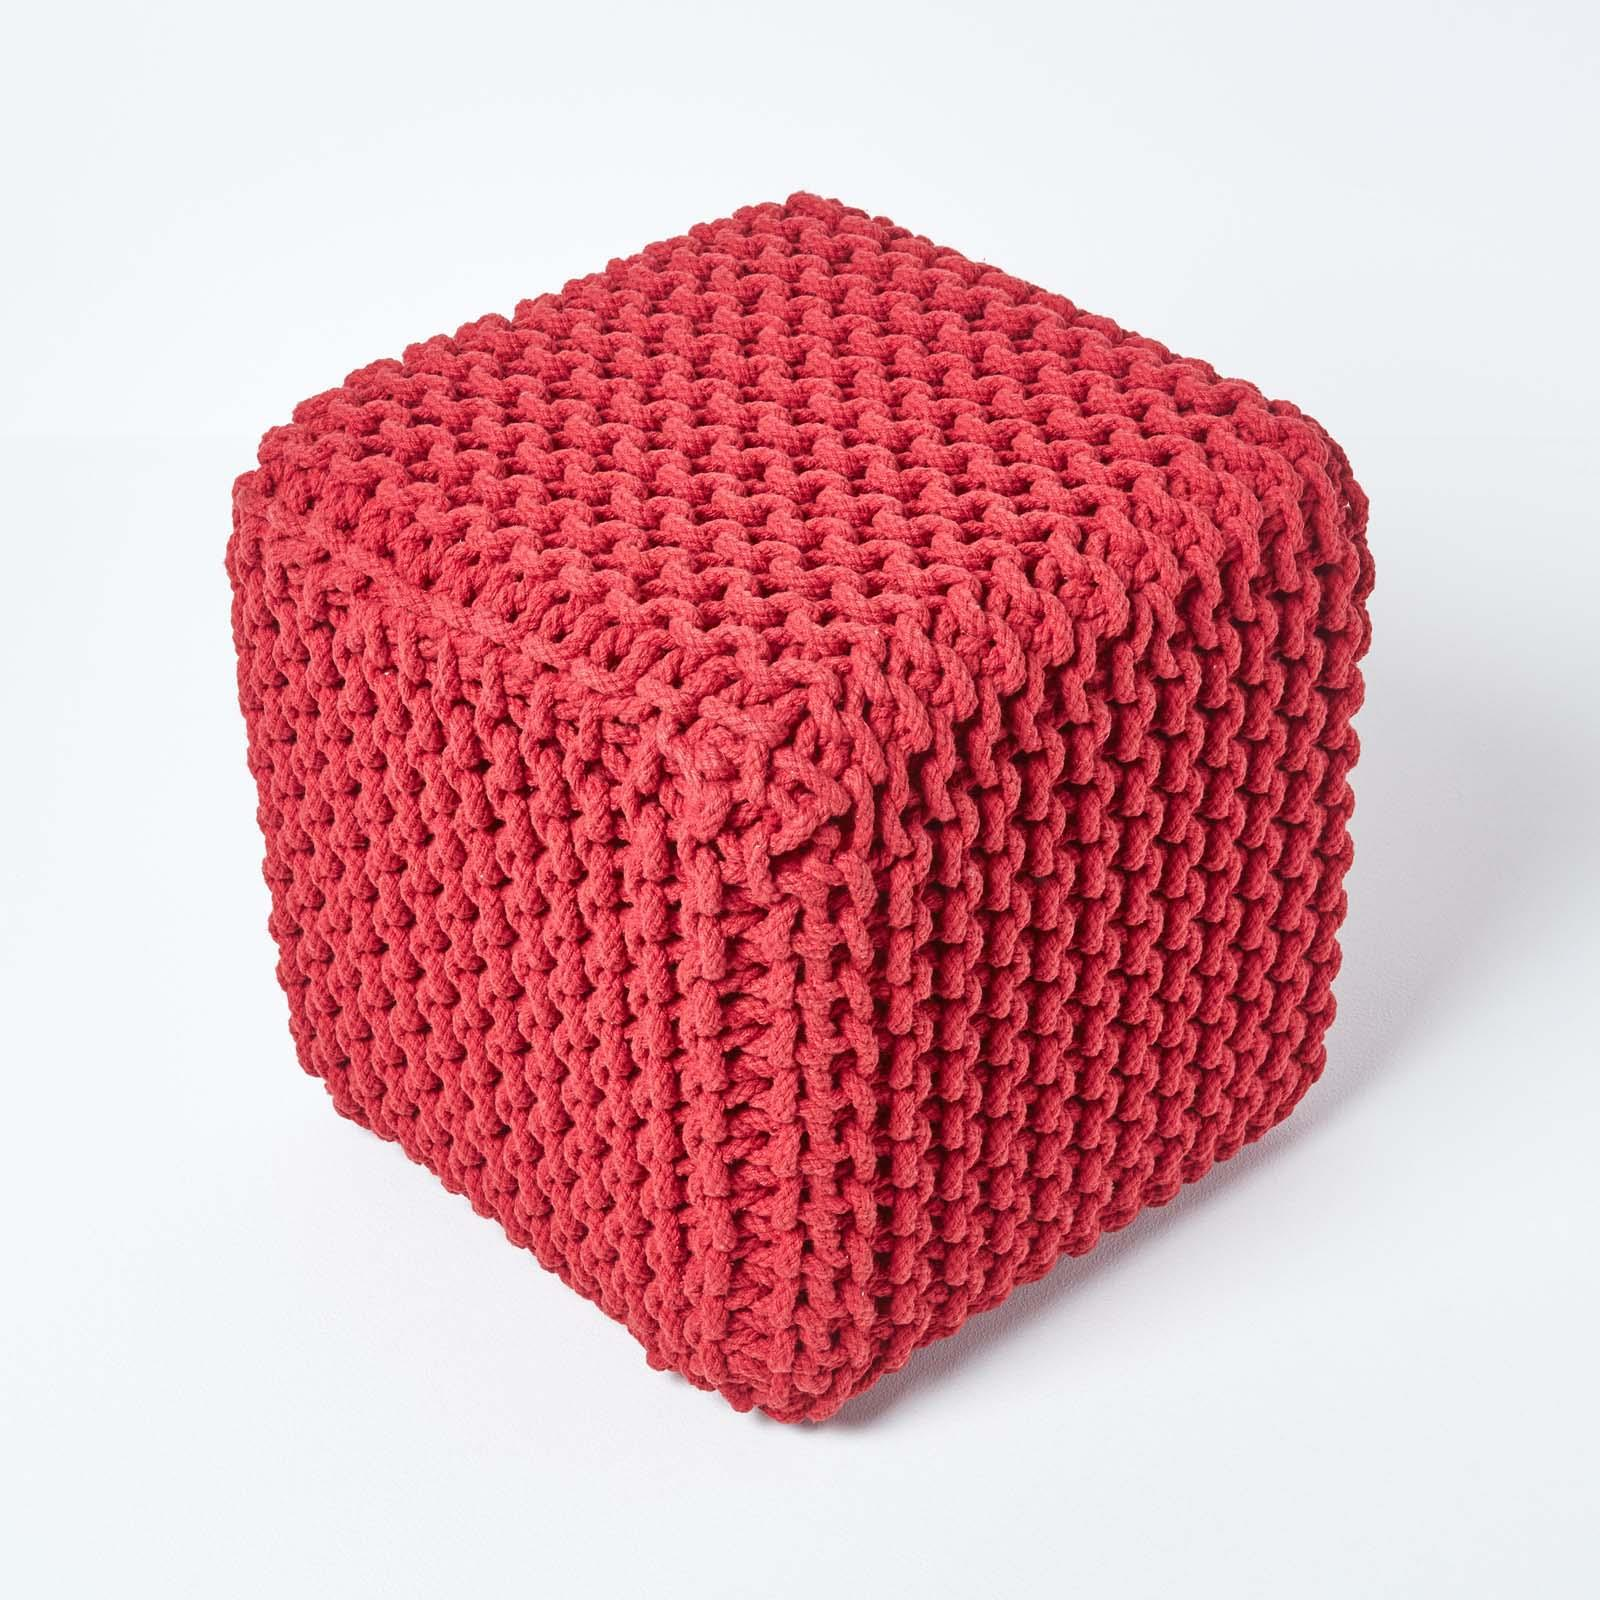 Hand-Knitted-100-Cotton-Pouffes-Round-Sphere-Or-Cube-Square-Chunky-Footstools thumbnail 177